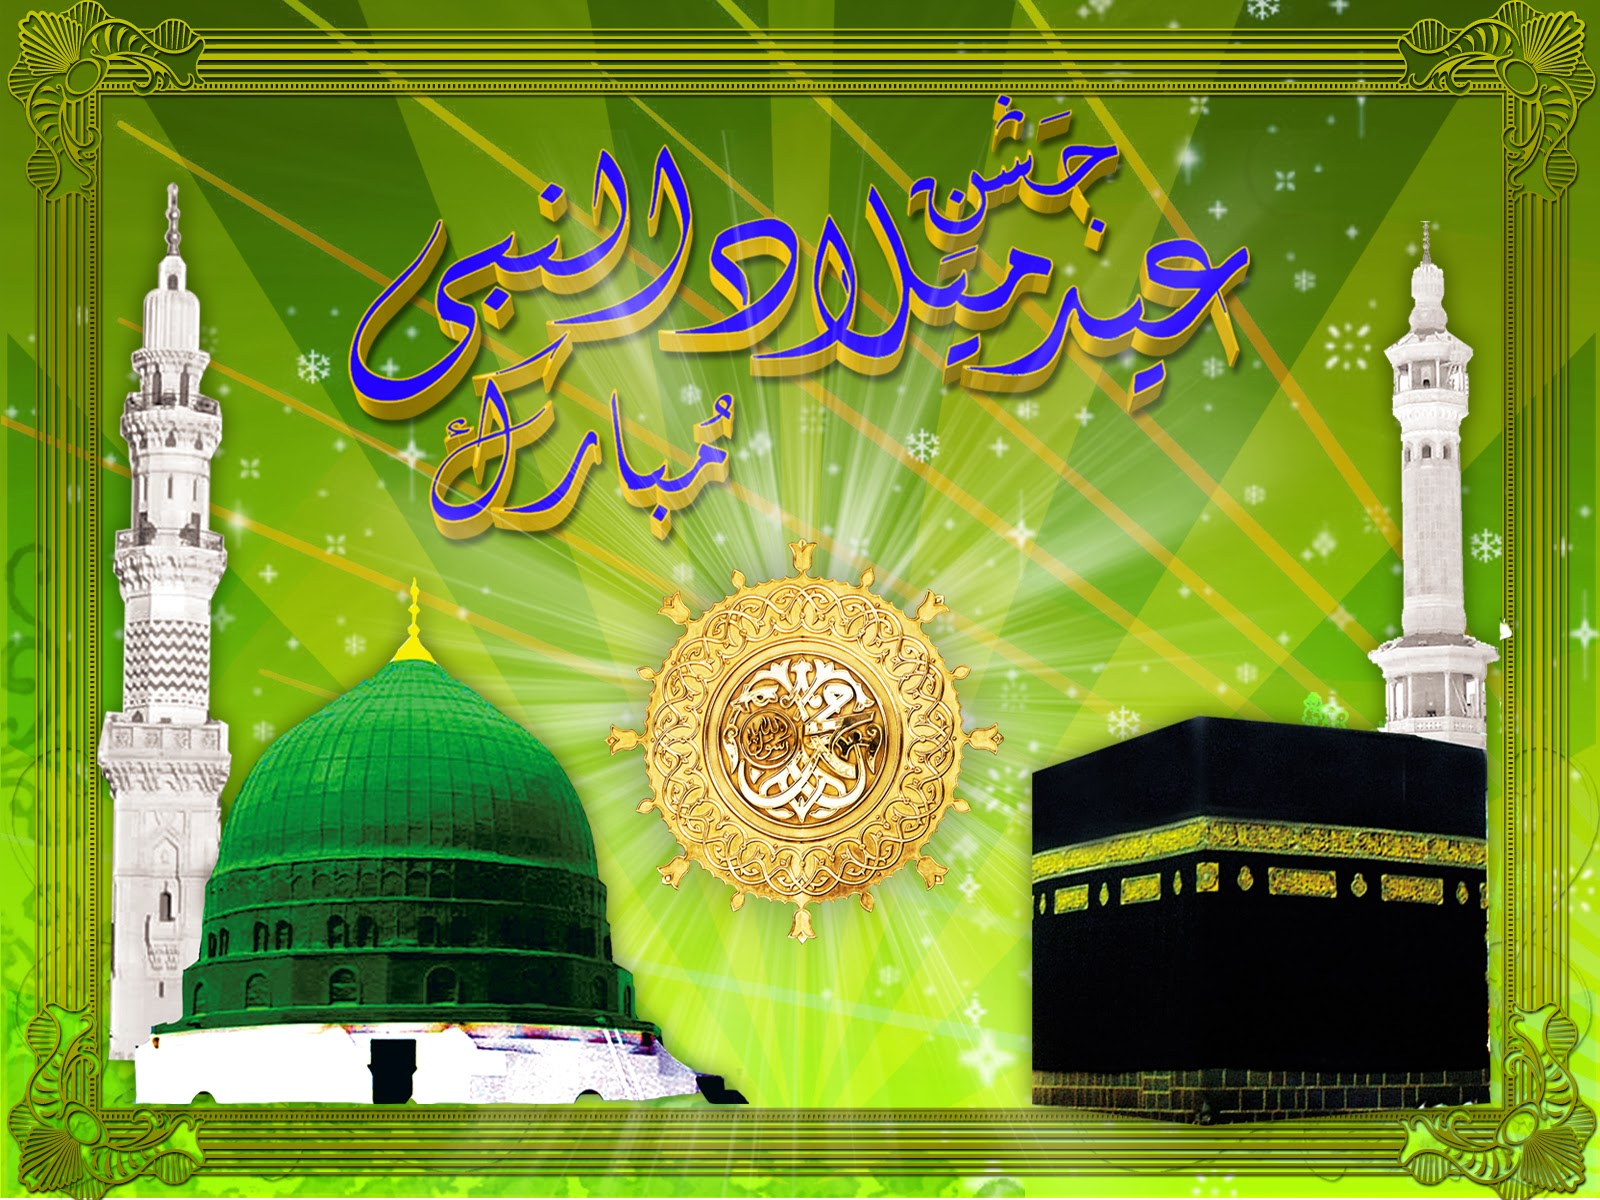 Wallpaper download eid milad un nabi - Milad Un Nabi 2014 Hd Wallpapers Hd Wallpapers Backgrounds